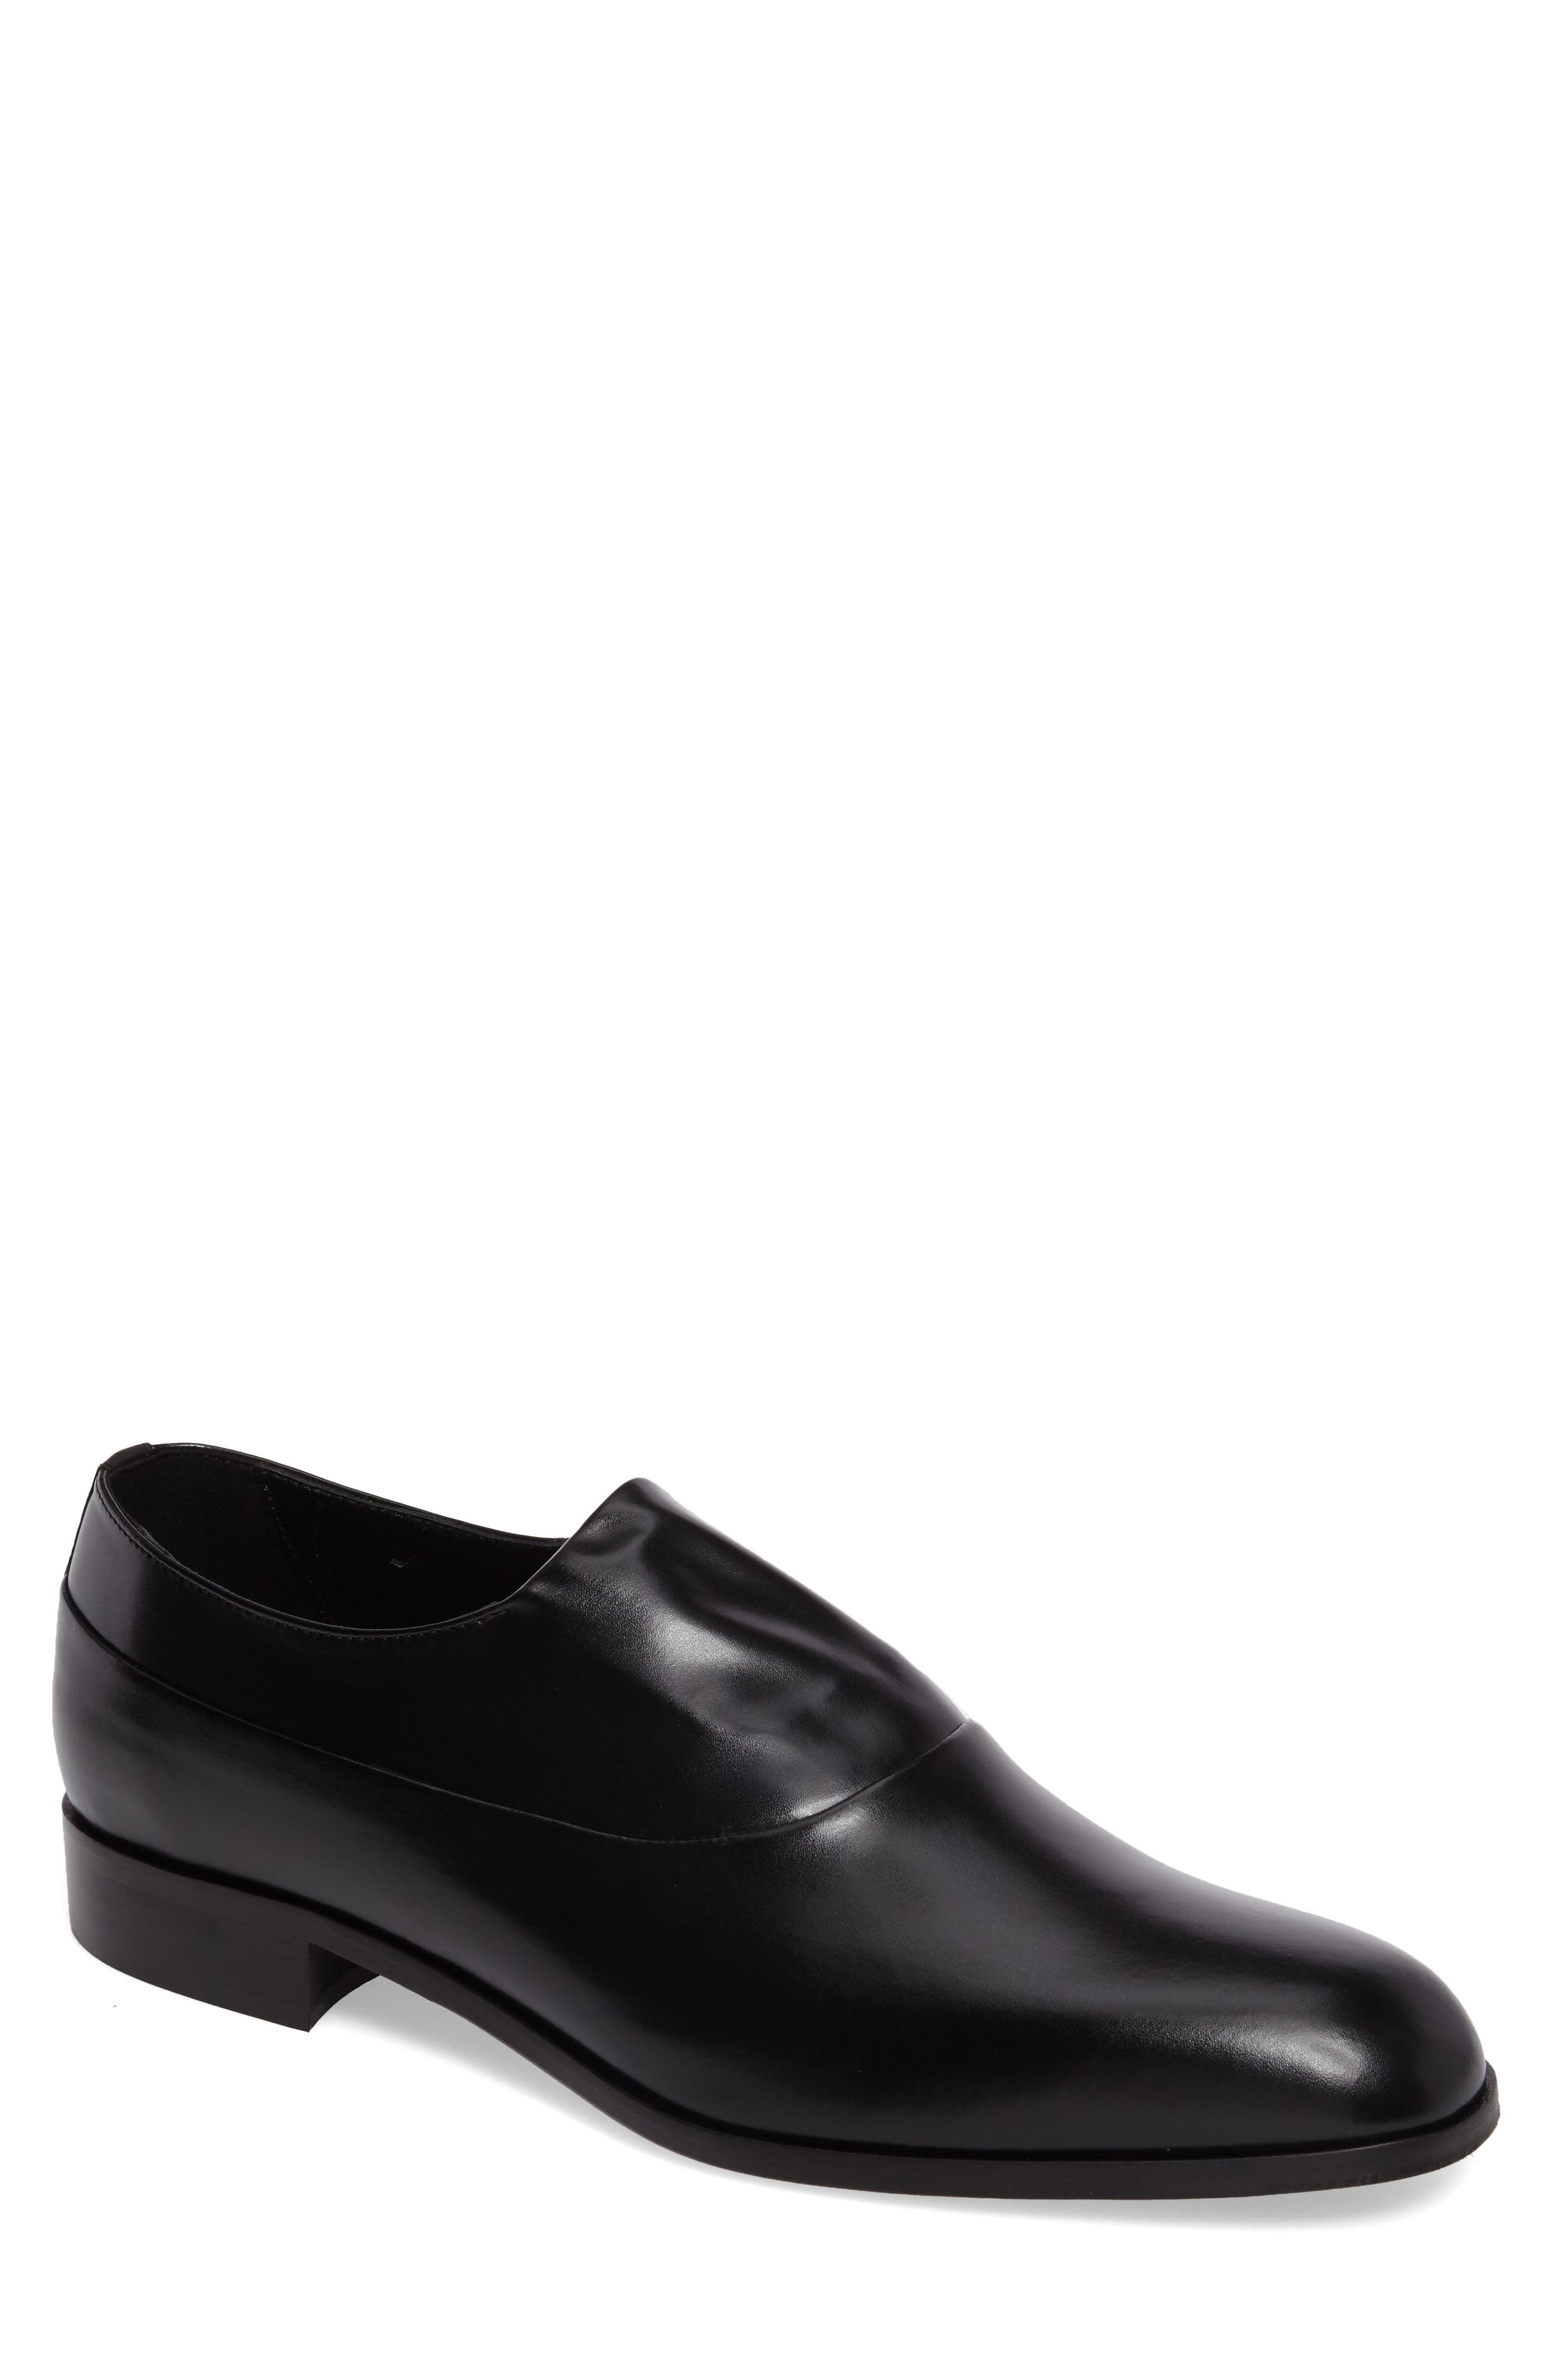 Marcio Venetian Loafer,                         Main,                         color, 002